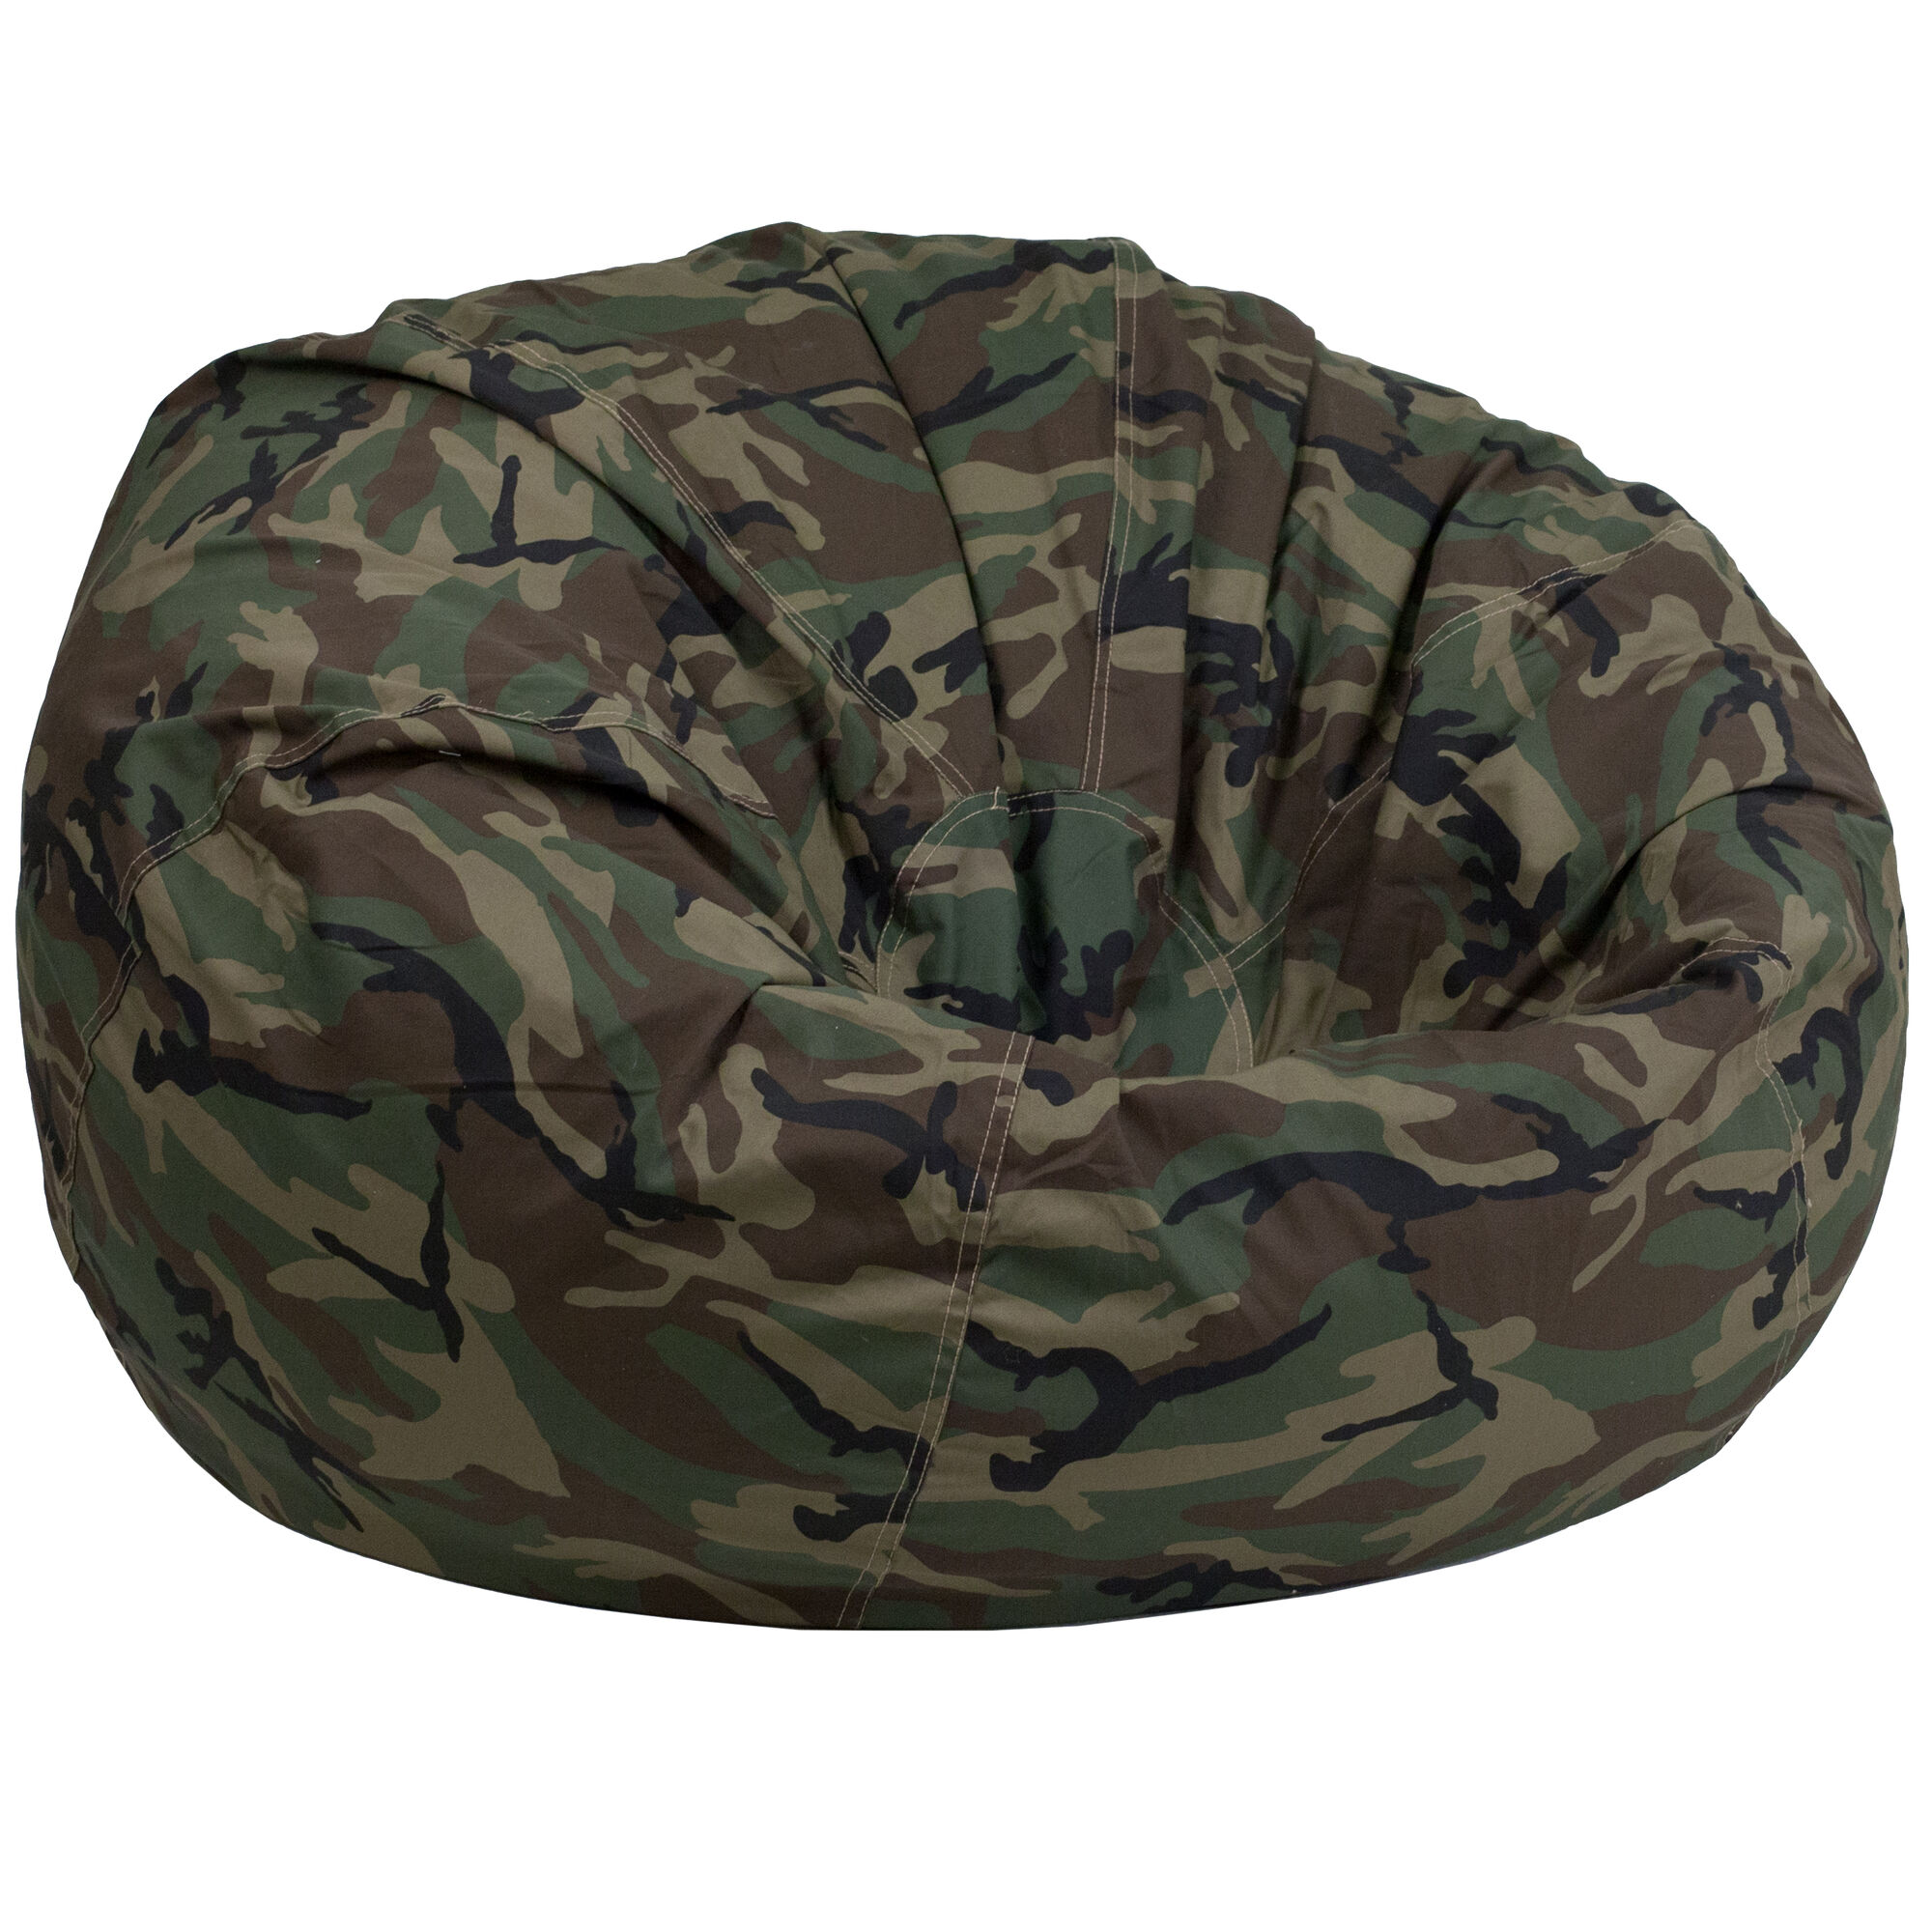 Camouflage Bean Bag Chair Dg Bean Large Camo Gg